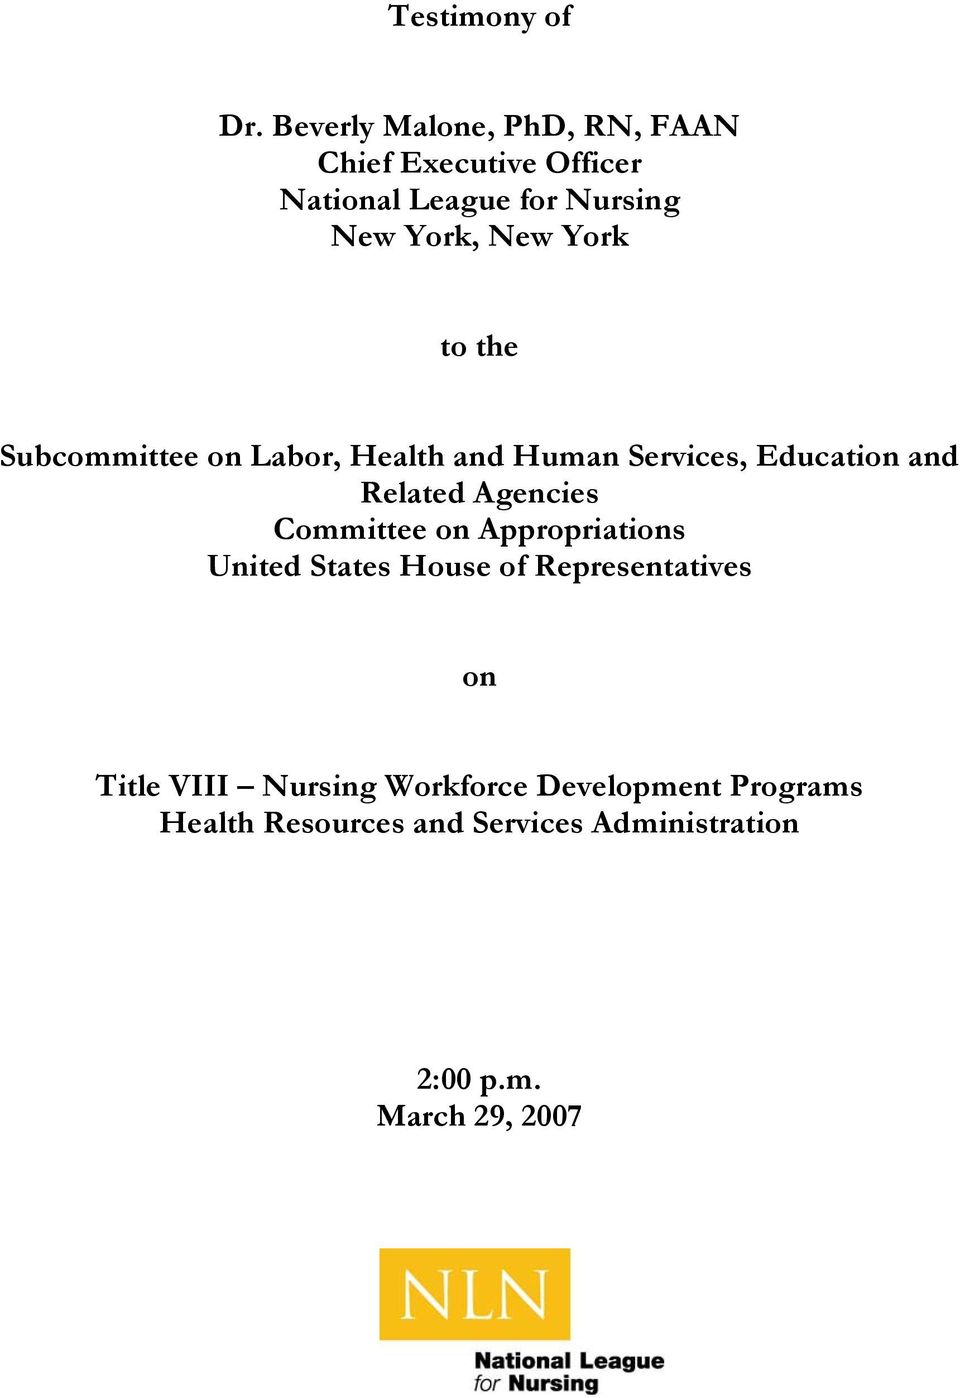 York to the Subcommittee on Labor, Health and Human Services, Education and Related Agencies